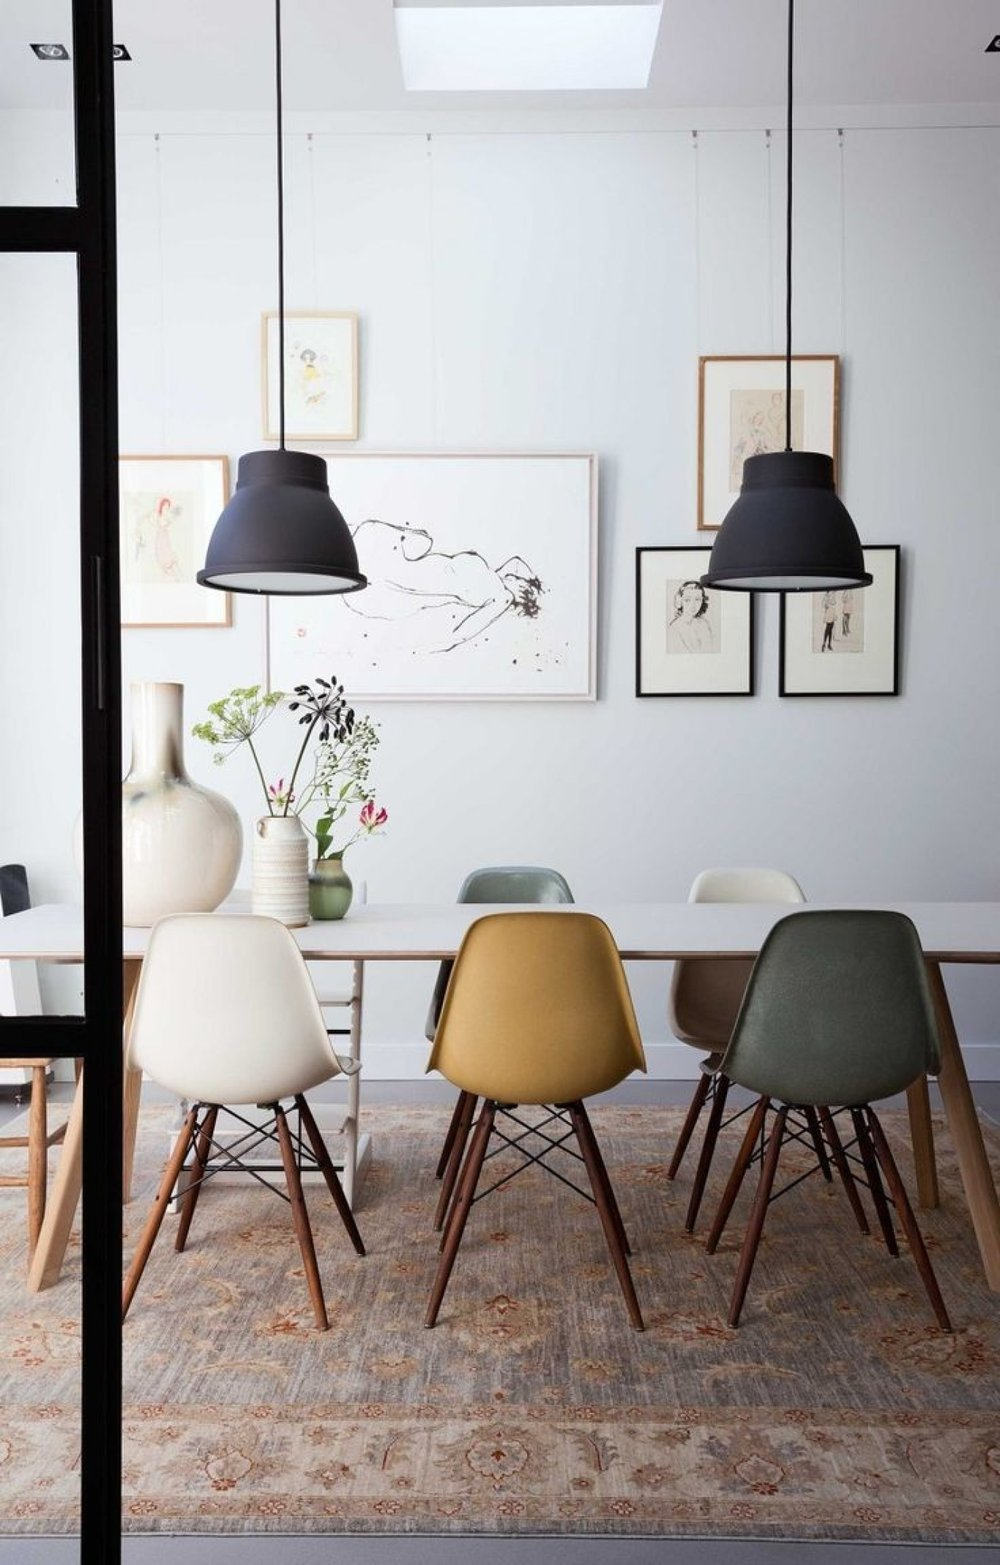 eames-dining-chair_eames-plywood-dining-chair-dining-chair-wood-eames-yellow-eames-dining-chair-eames-dining-chair-upholstered-replica-eames-dining-chair_large.jpg